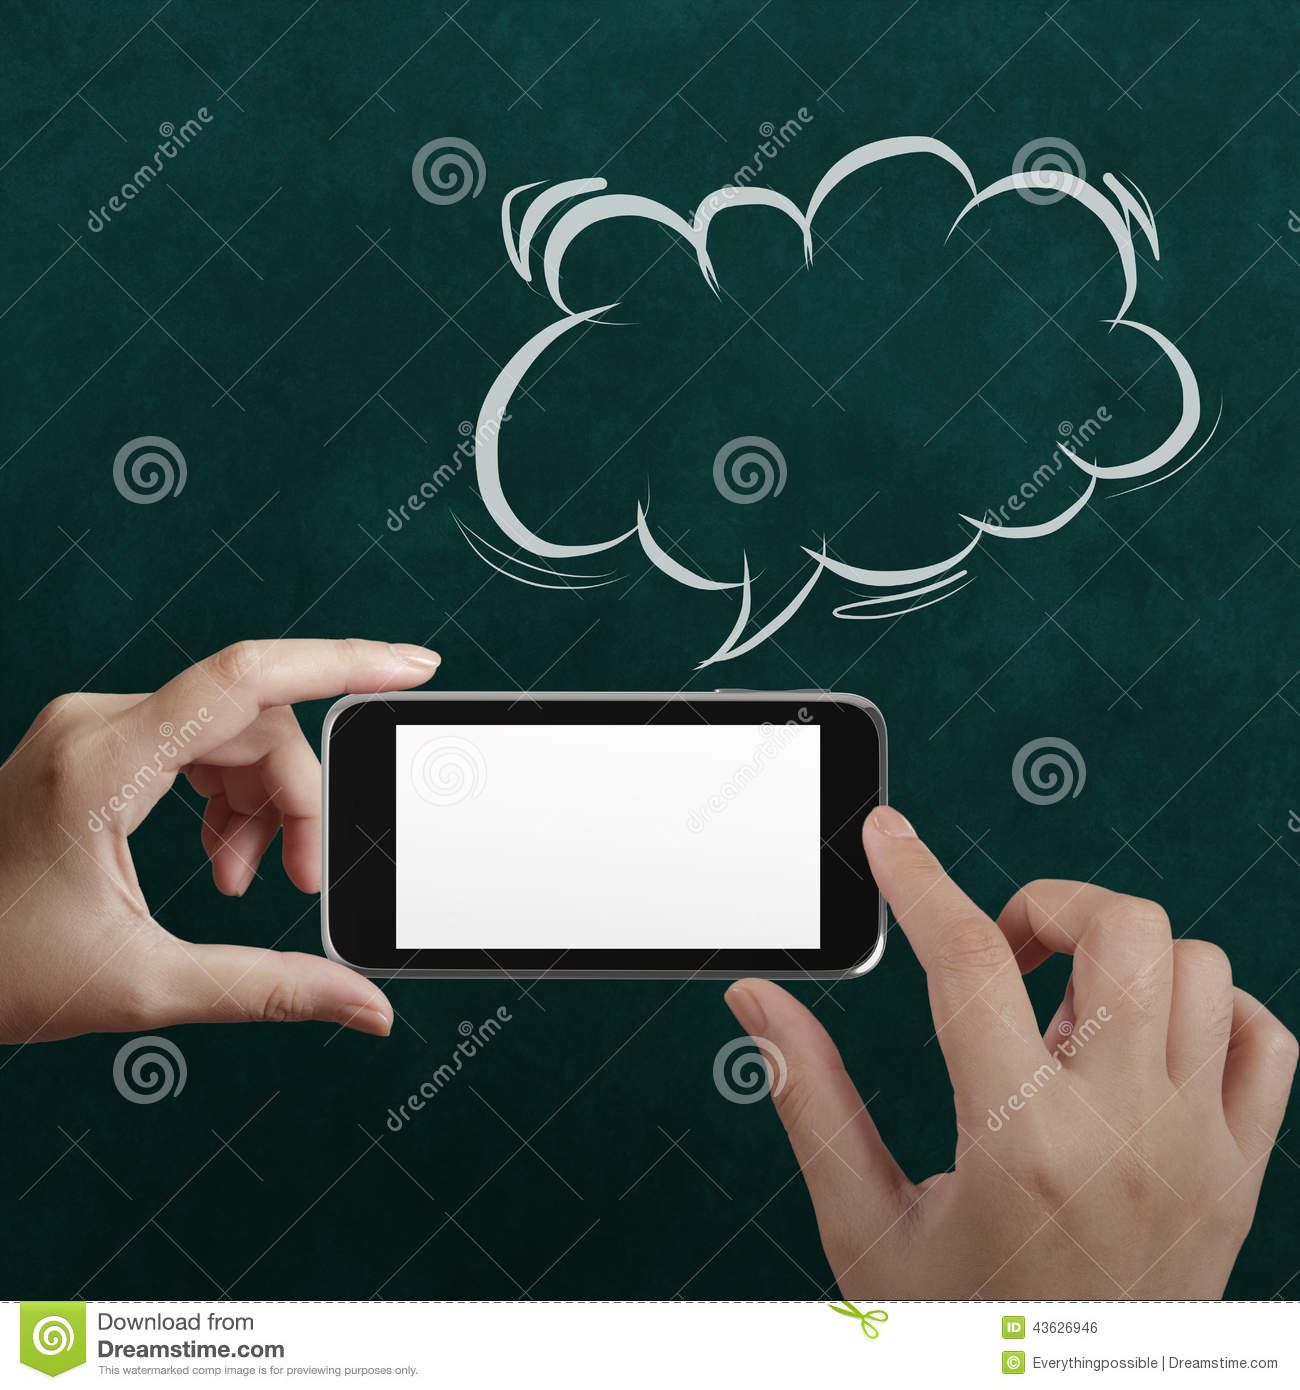 use of mobile phone speech People also use gps system in their mobile phones, use internet to browse things and update themselves by getting news on their mobile phones most of the people use mobile phones for the purpose of entertainment too.